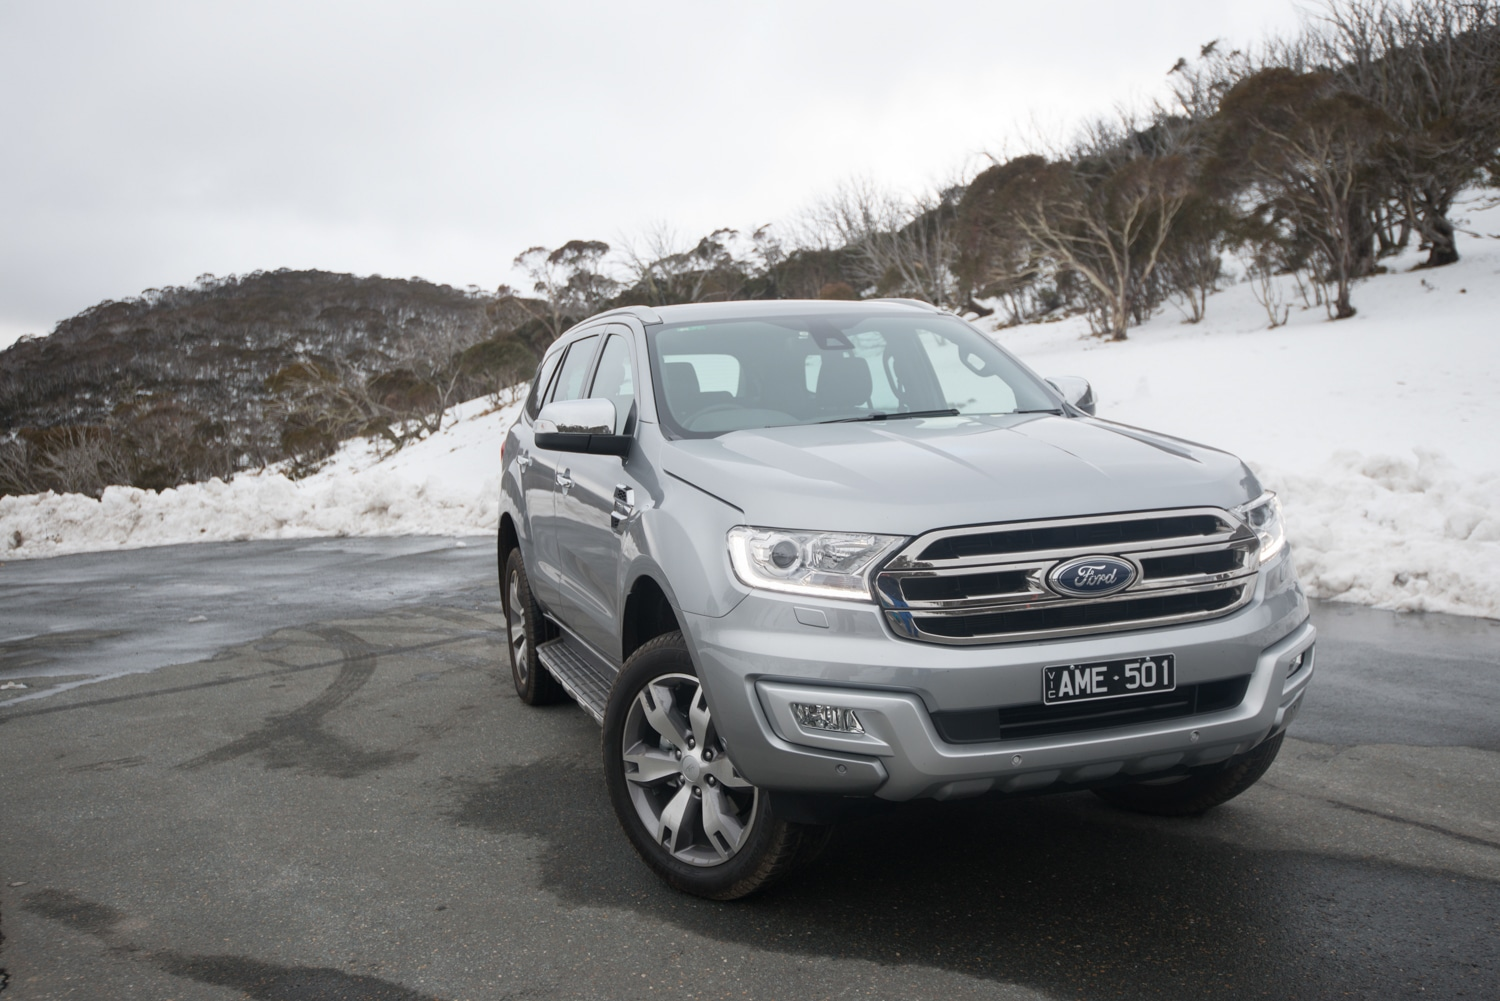 ford everest car standing on the road